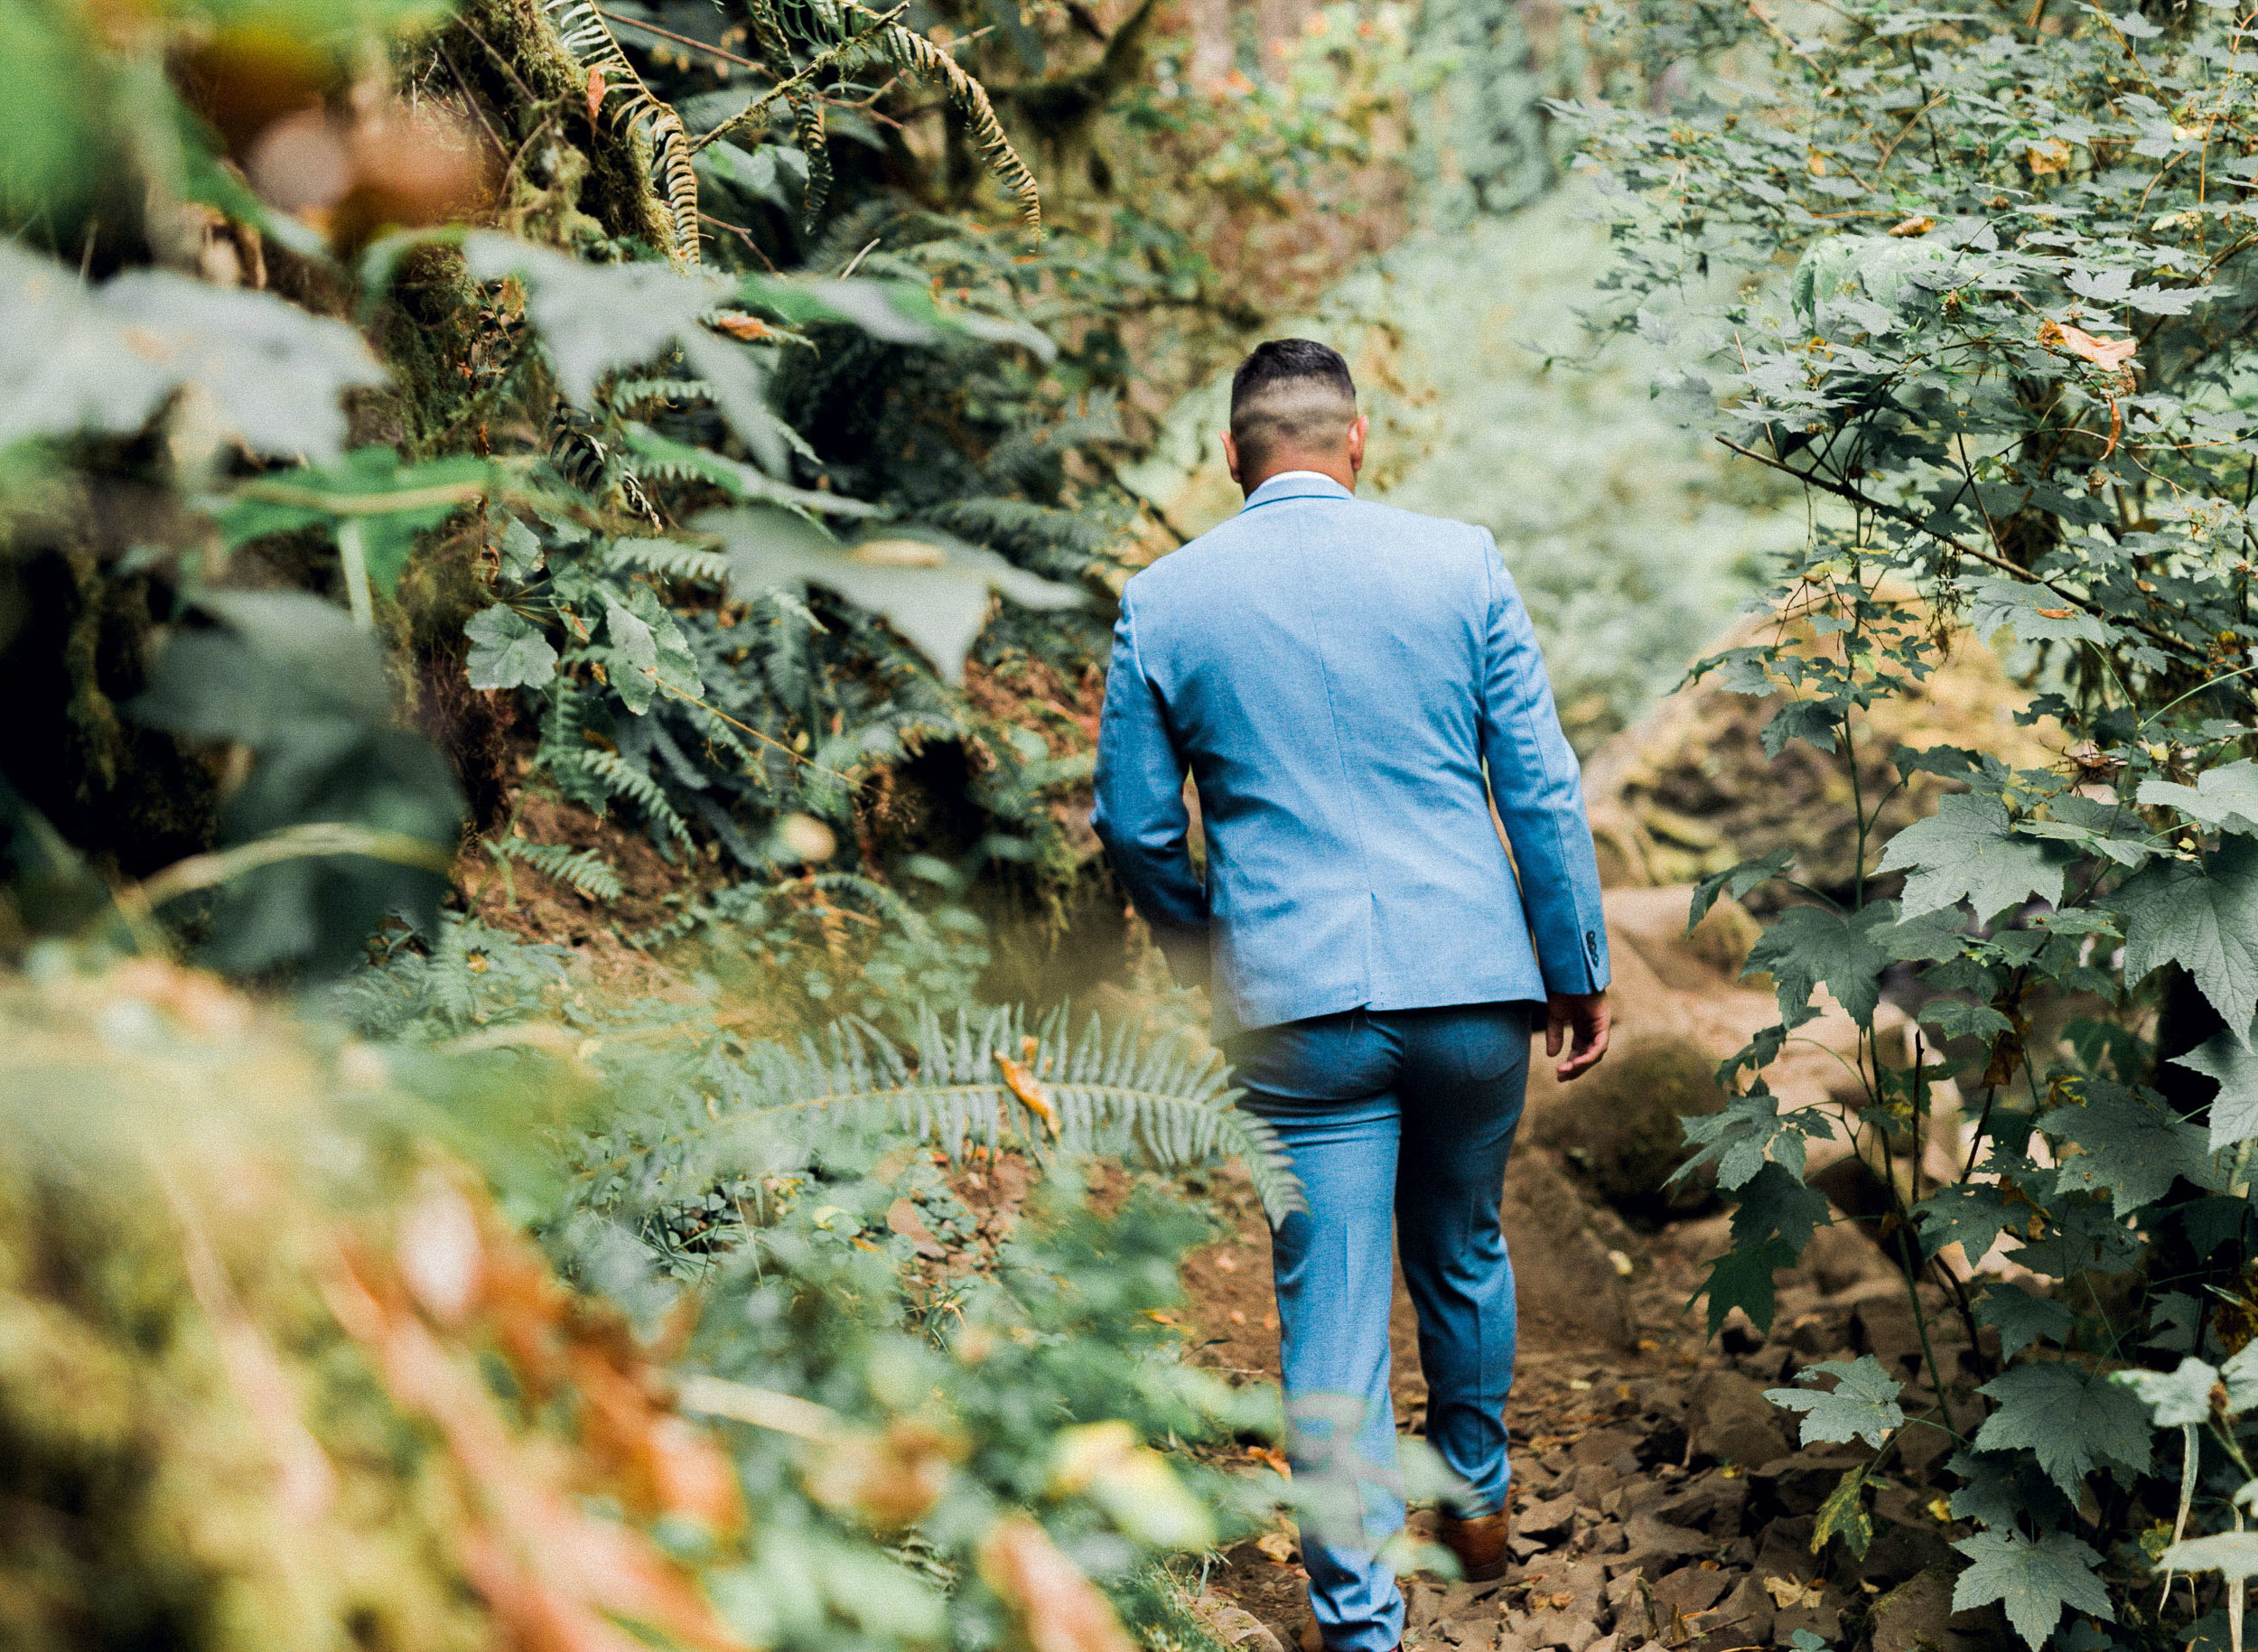 abiqua_falls_elopement_wedding_oregon_photographer_videographer_022.jpg